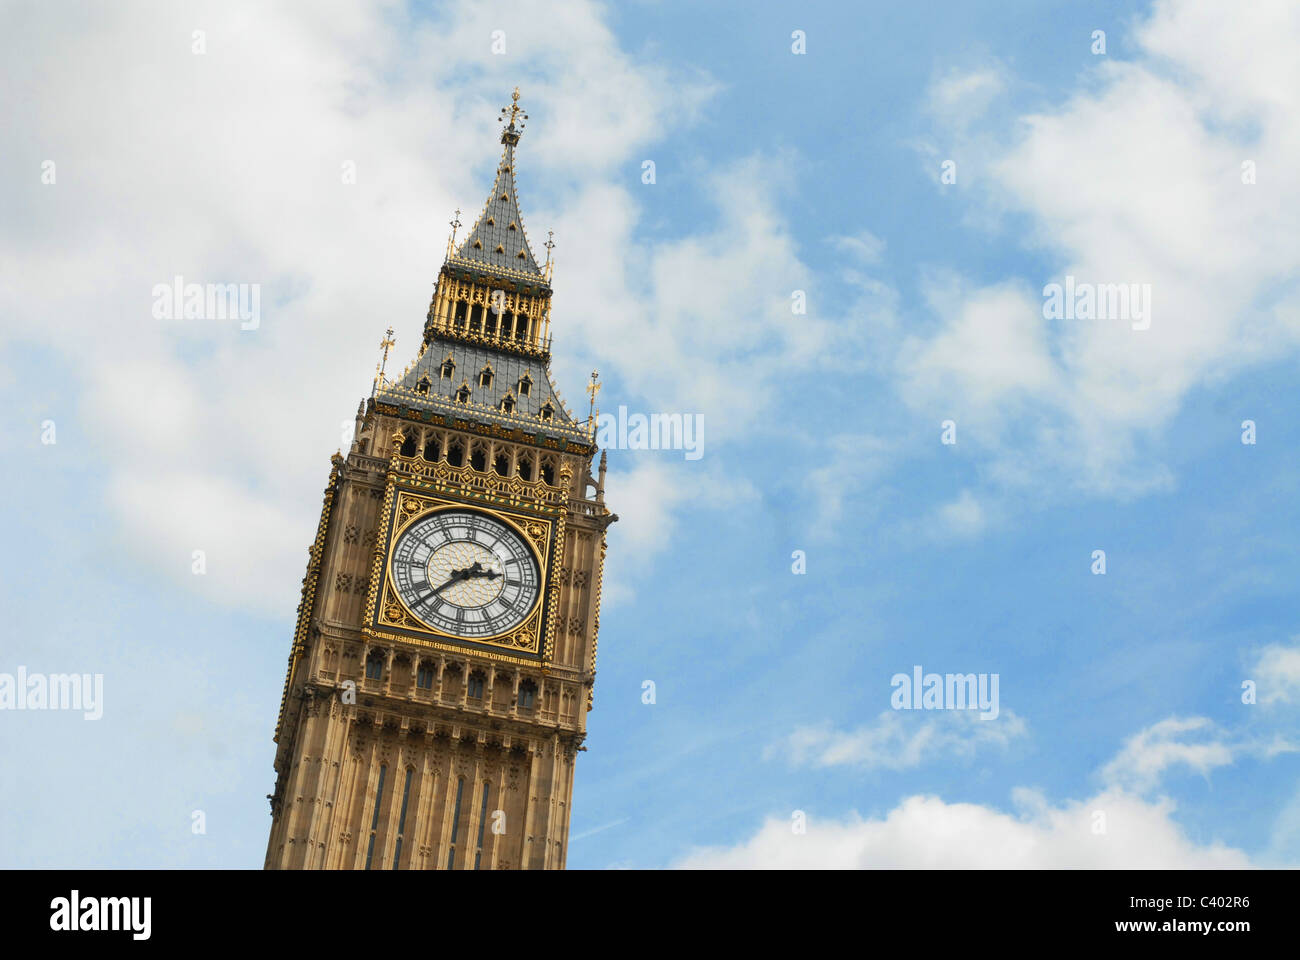 This is an image of Big Ben clock at the Houses of Parliament, UK - Stock Image